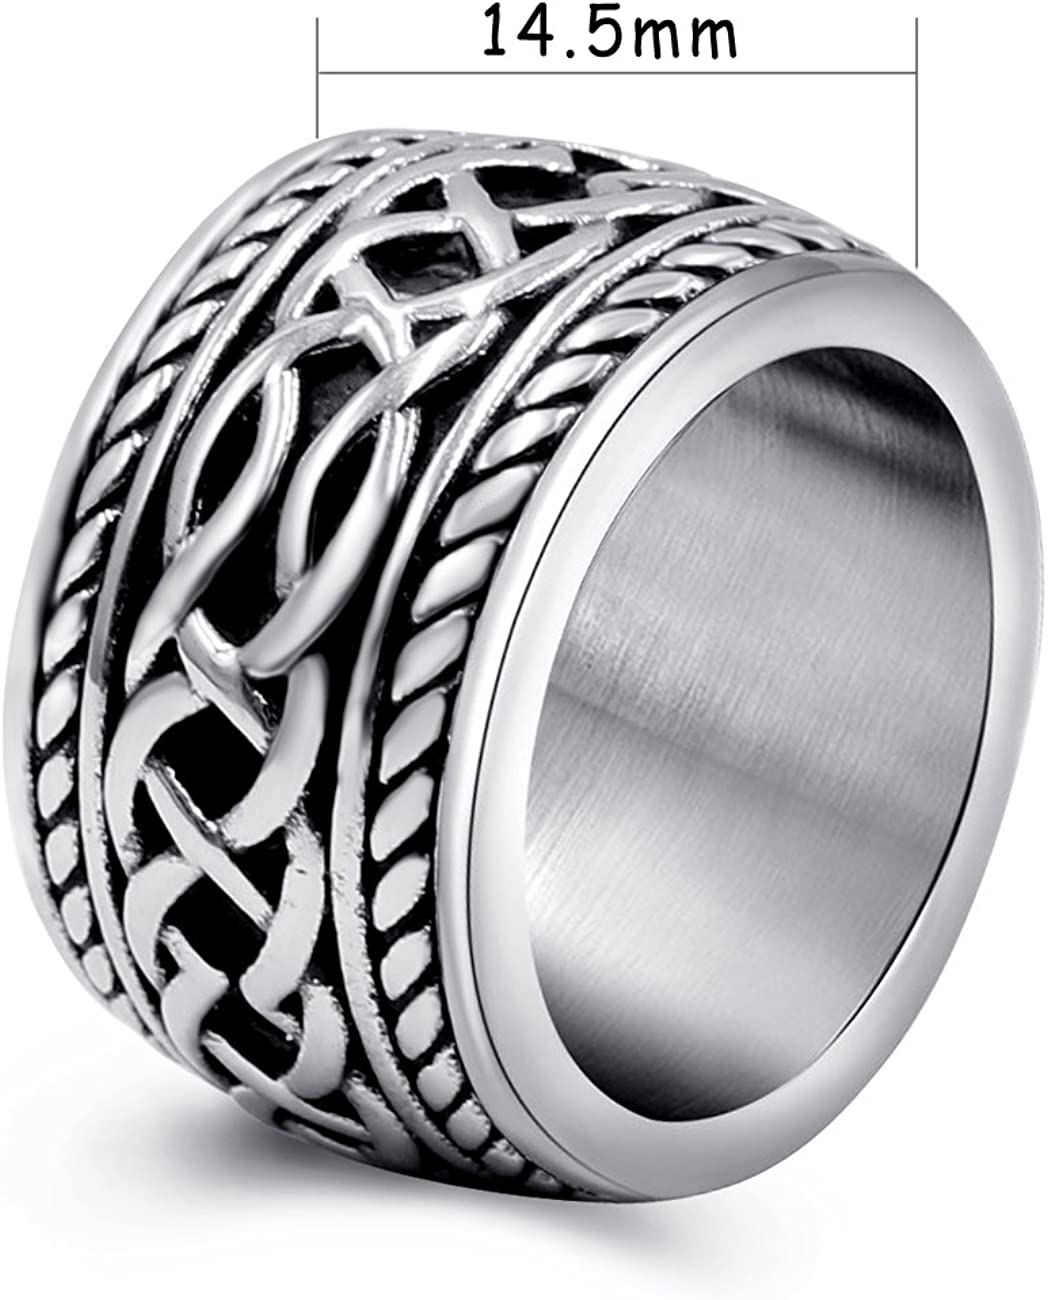 Men/'s Stainless Steel Three Toned Wedding  Ring Sizes 9-13